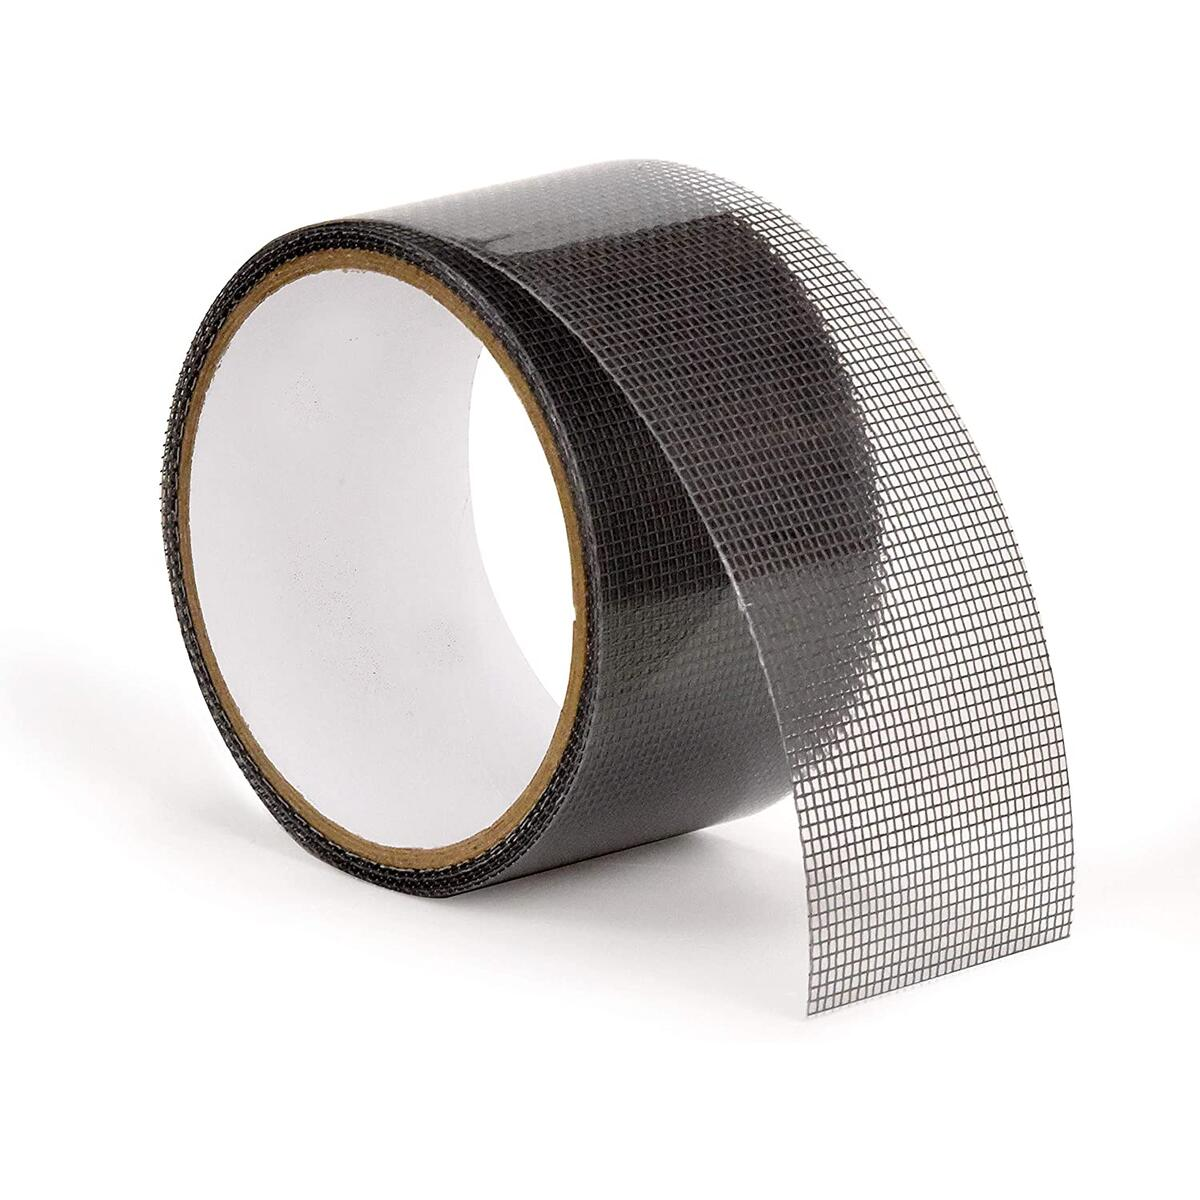 "Teegan Tapes - Window Screen Repair Tape - 2"" X 6.7 Feet (80') – Fiberglass Covering Wire mesh Tape – Strong Adhesive – Repair Hole tears – Home, Camper, RV, Cottage with Screen Doors or Windows."